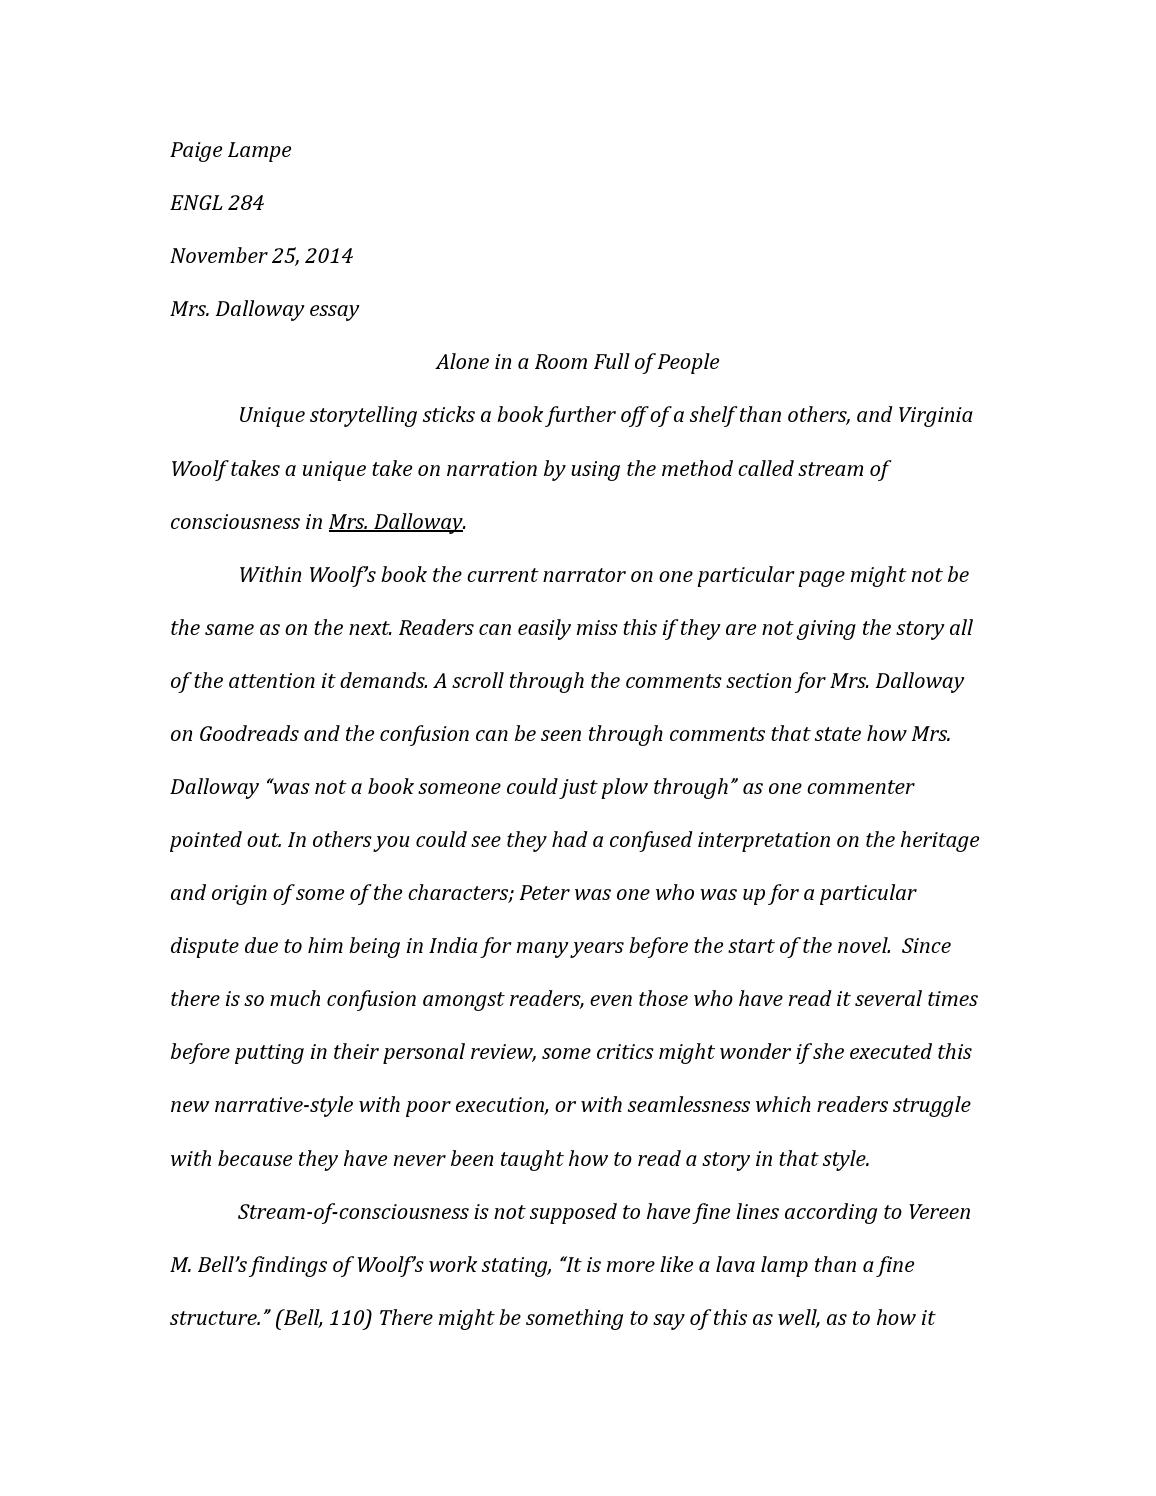 002 Mrs Dalloway Essay Page 1 Marvelous Prompts Topics Full